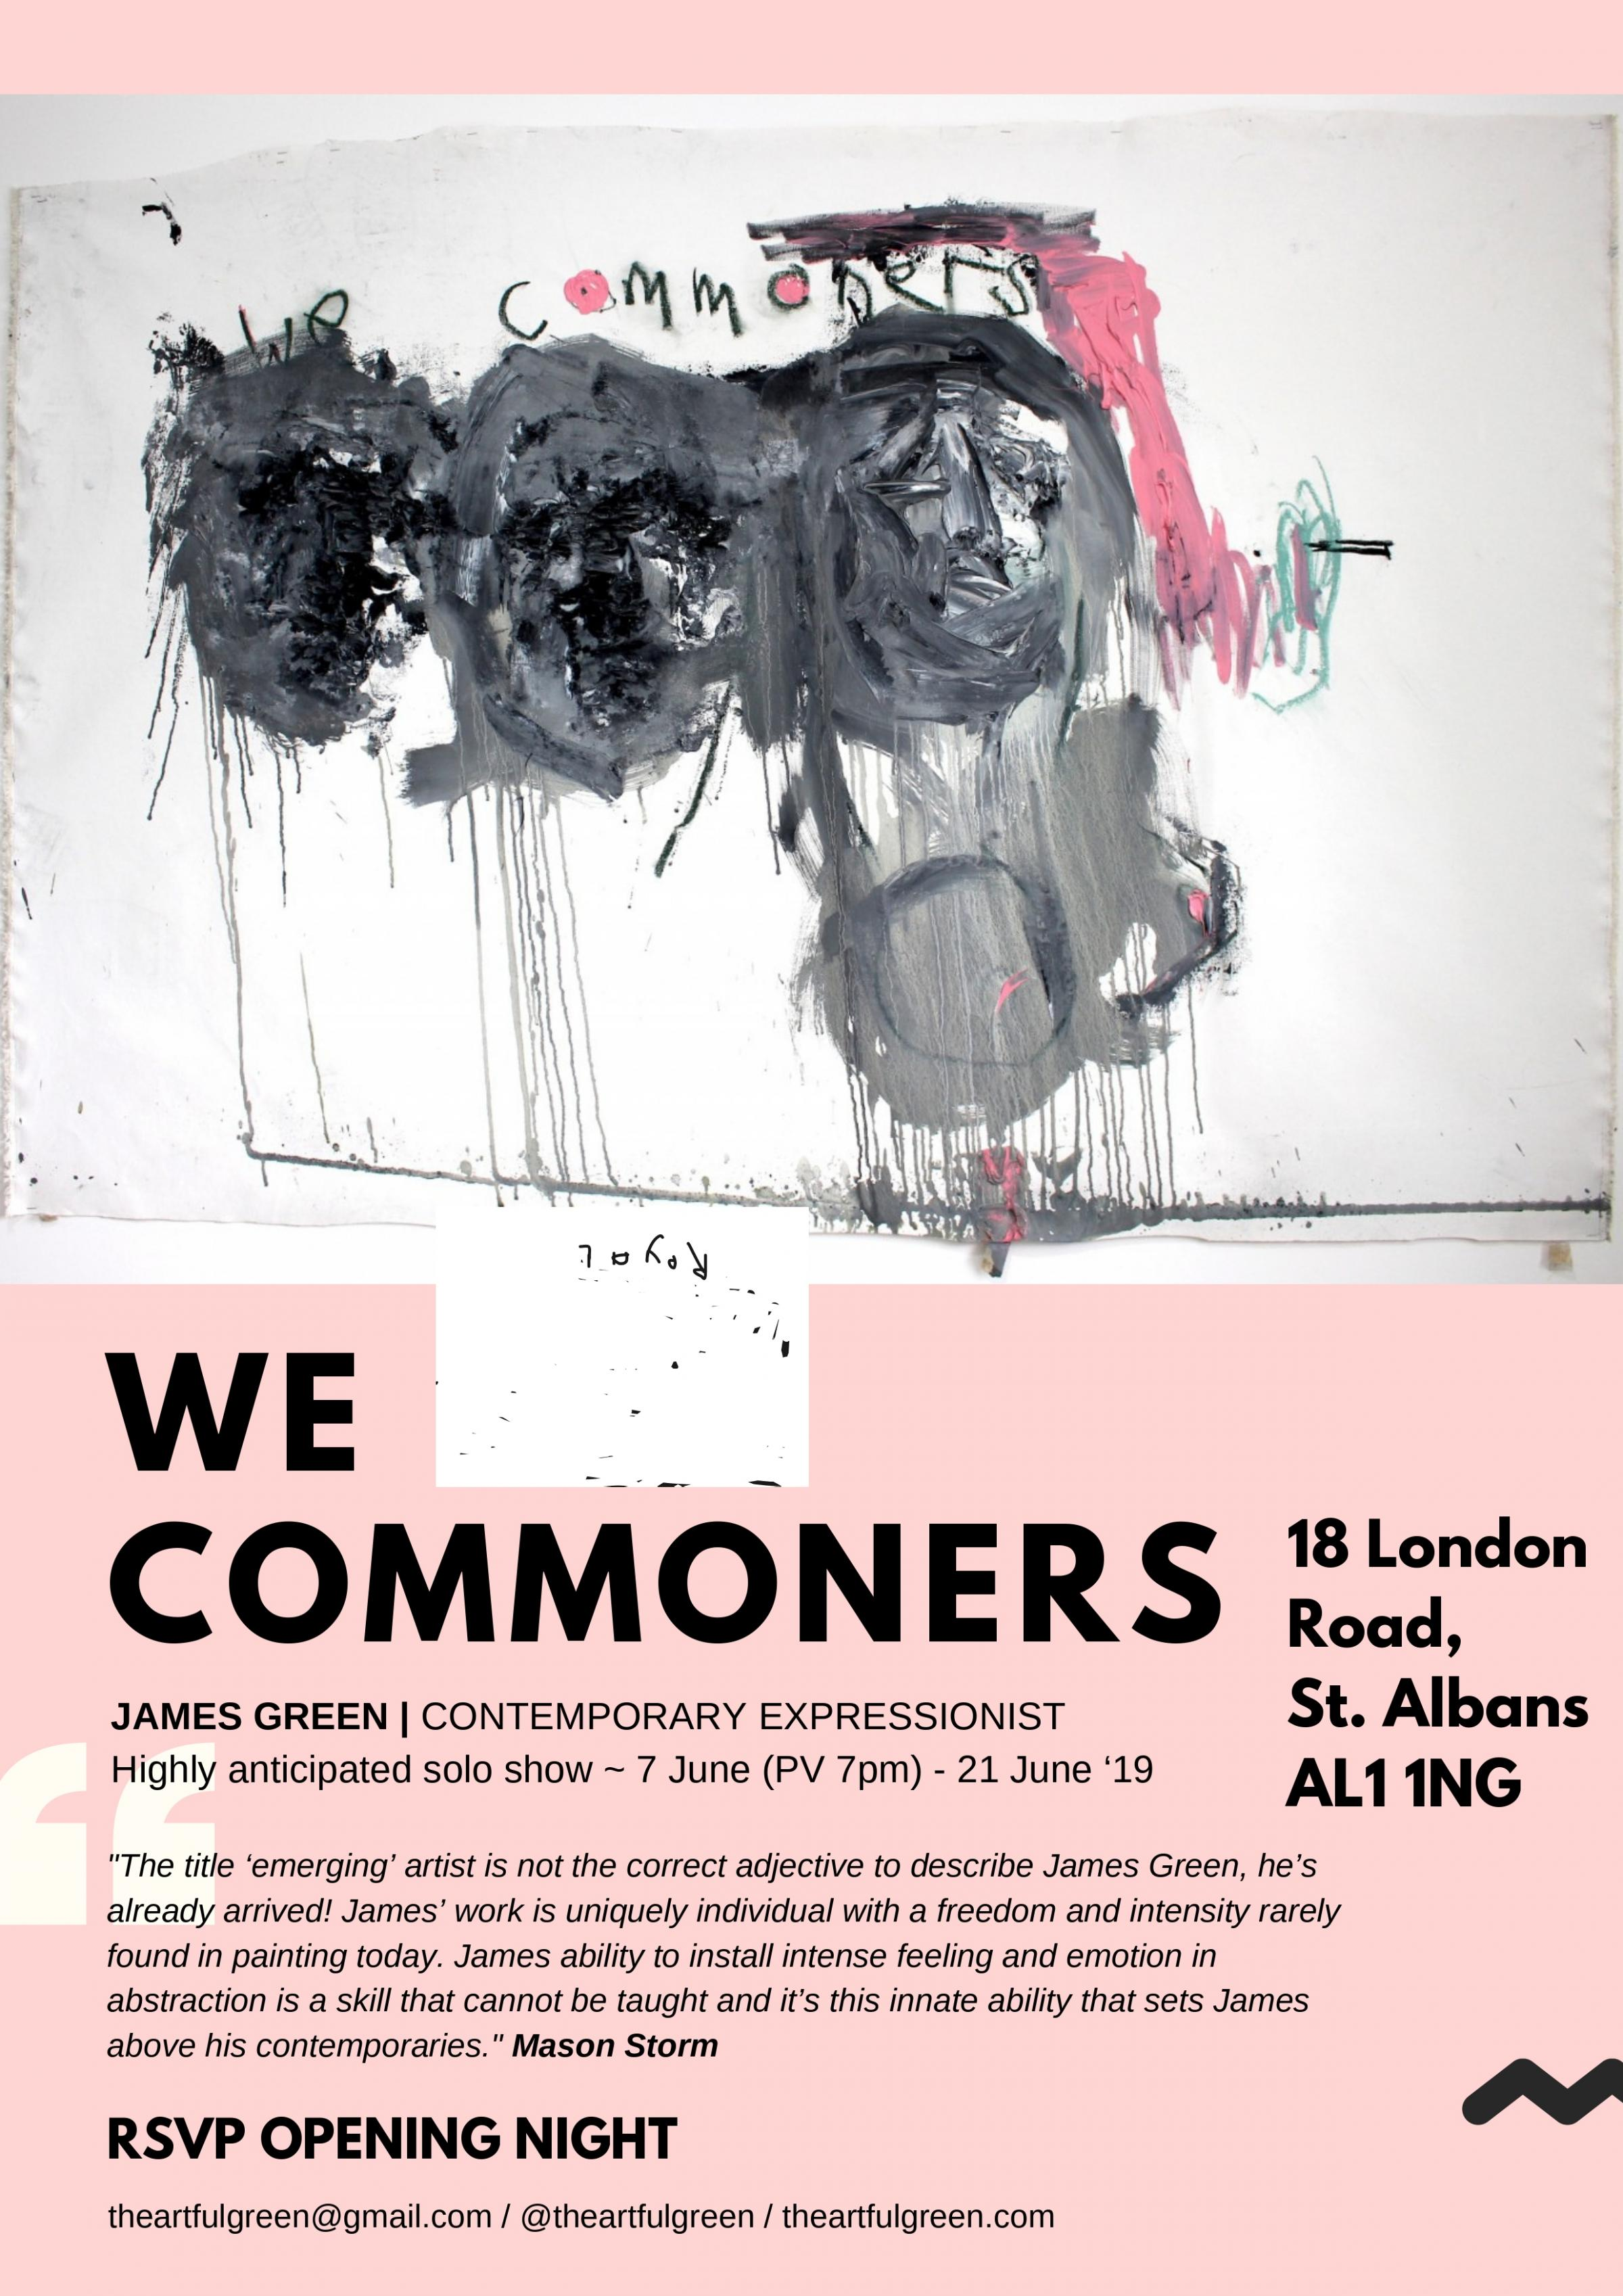 'WE COMMONERS' - Highly anticipated UK solo show from contemporary artist James Green